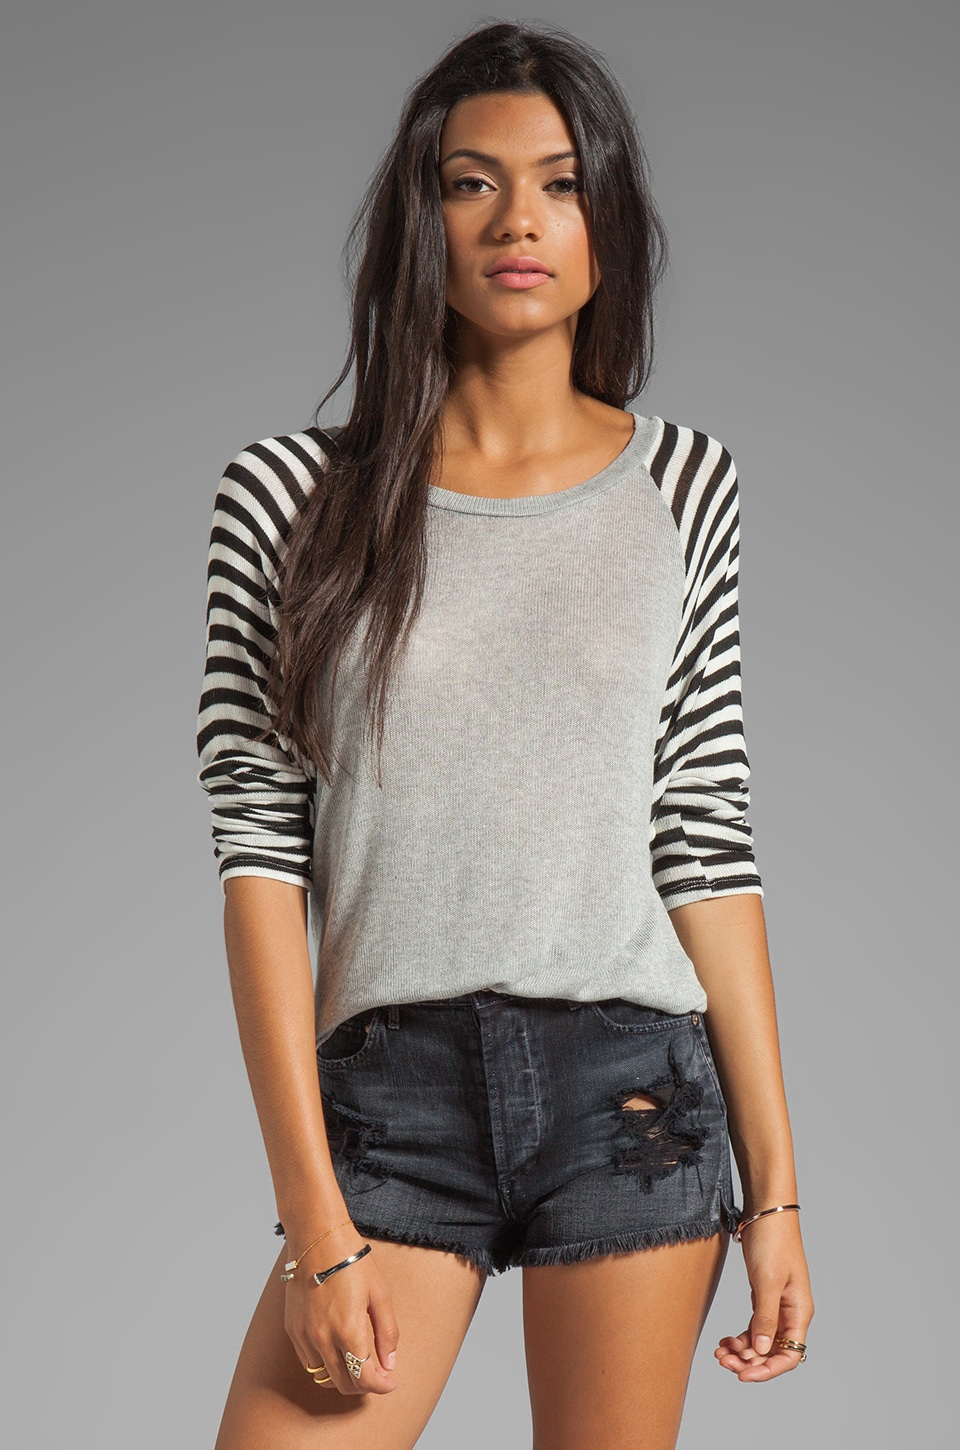 Michael Lauren Rio Striped Raglan Sweater in Heather Grey/Stripe